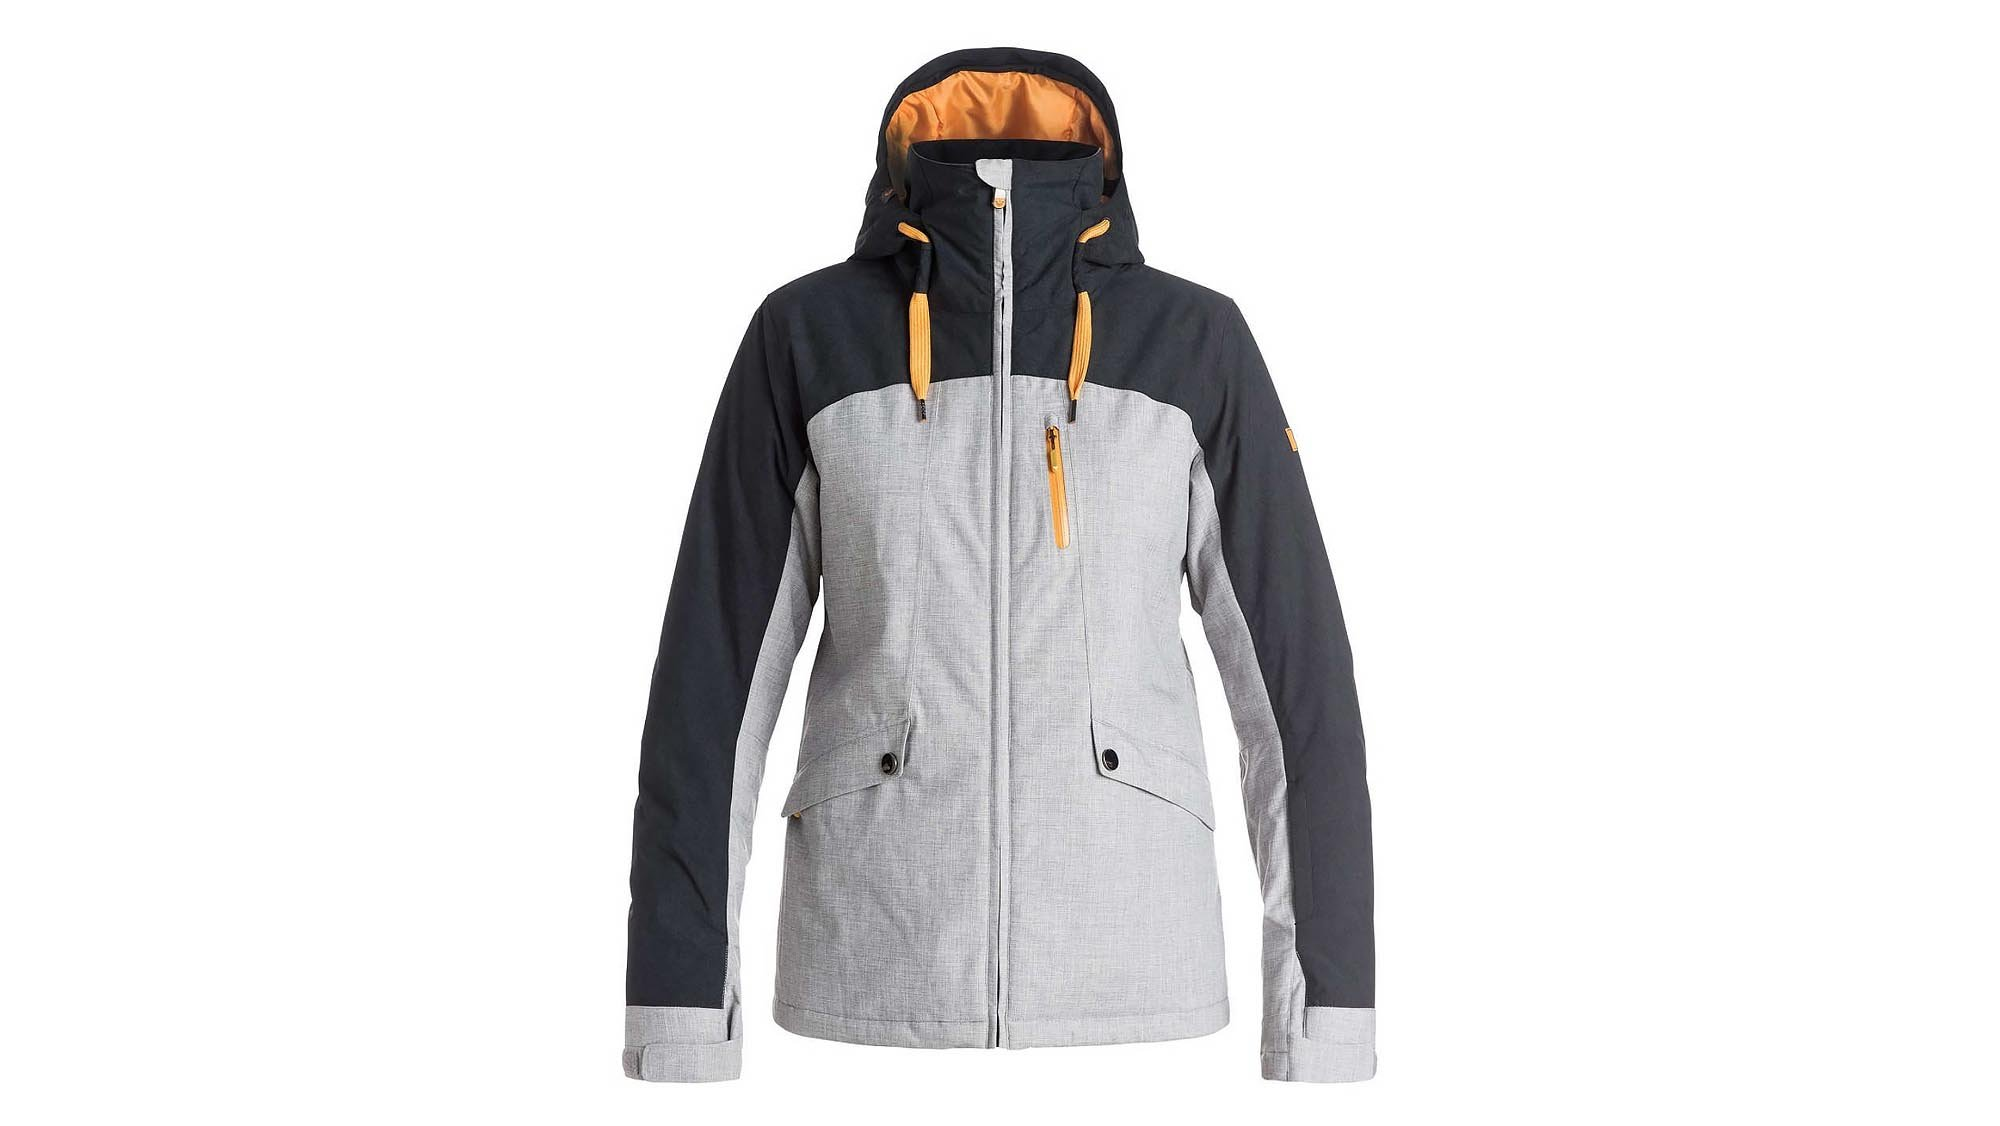 7cabb9918562 Best ski jackets 2019  Stay warm and stylish on the slopes from as ...